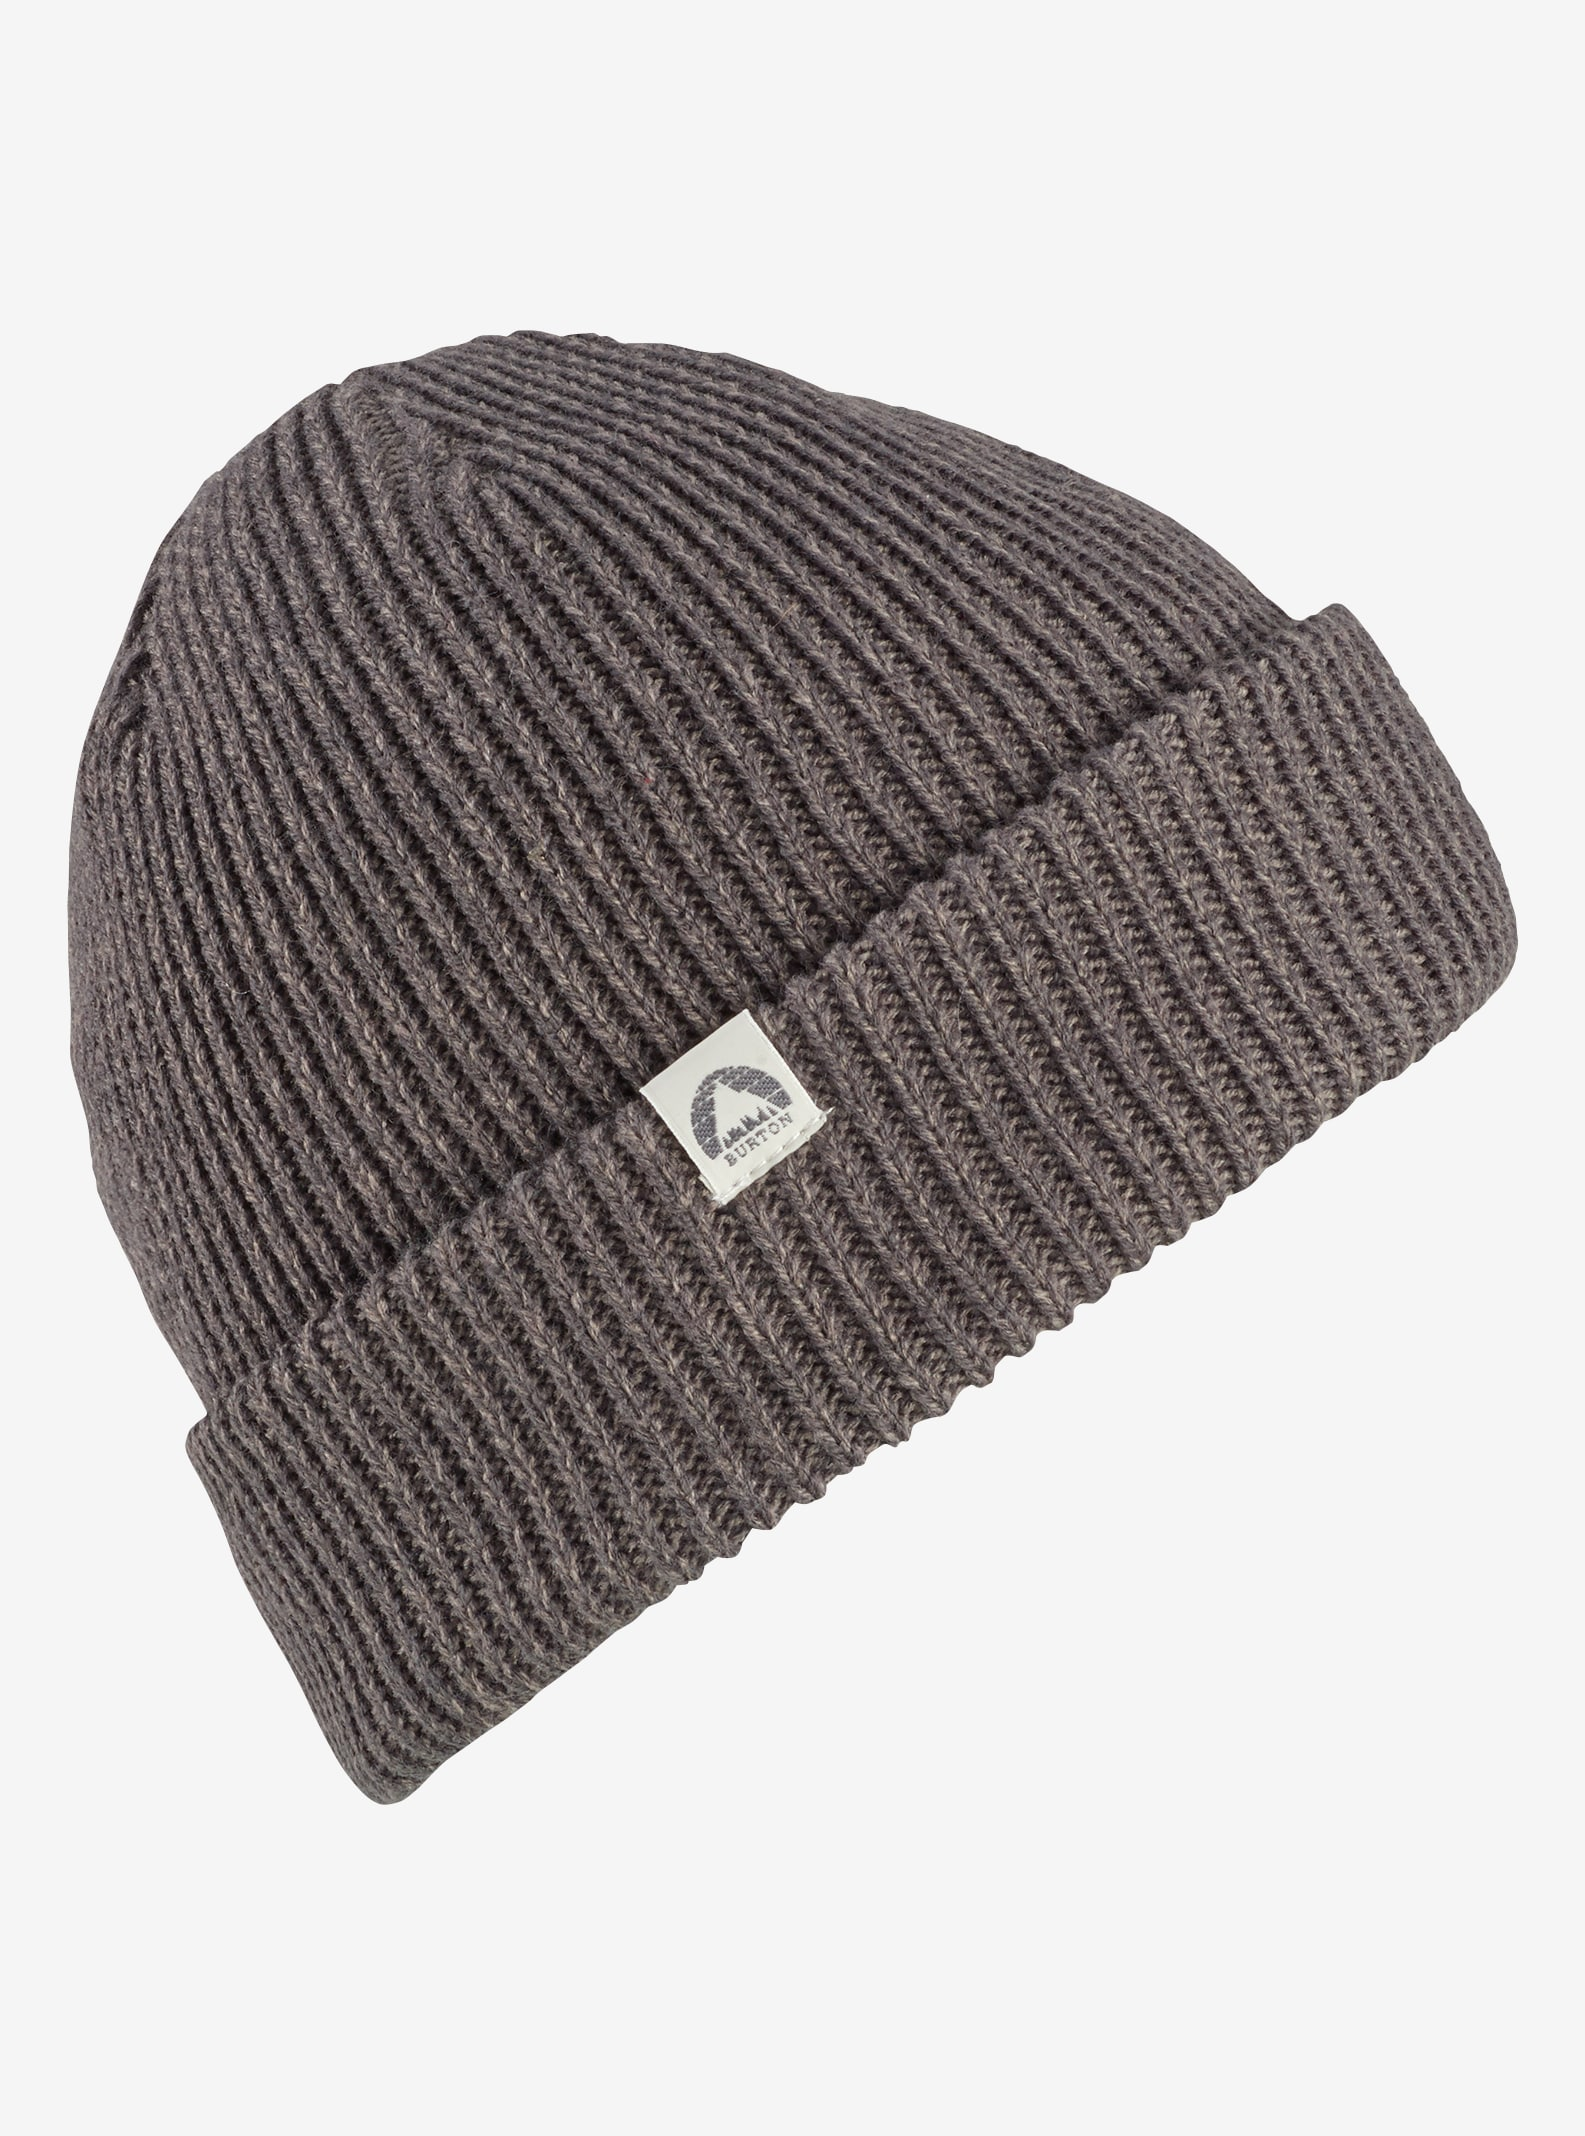 Burton Shenandoah Beanie shown in Faded / Monoxide